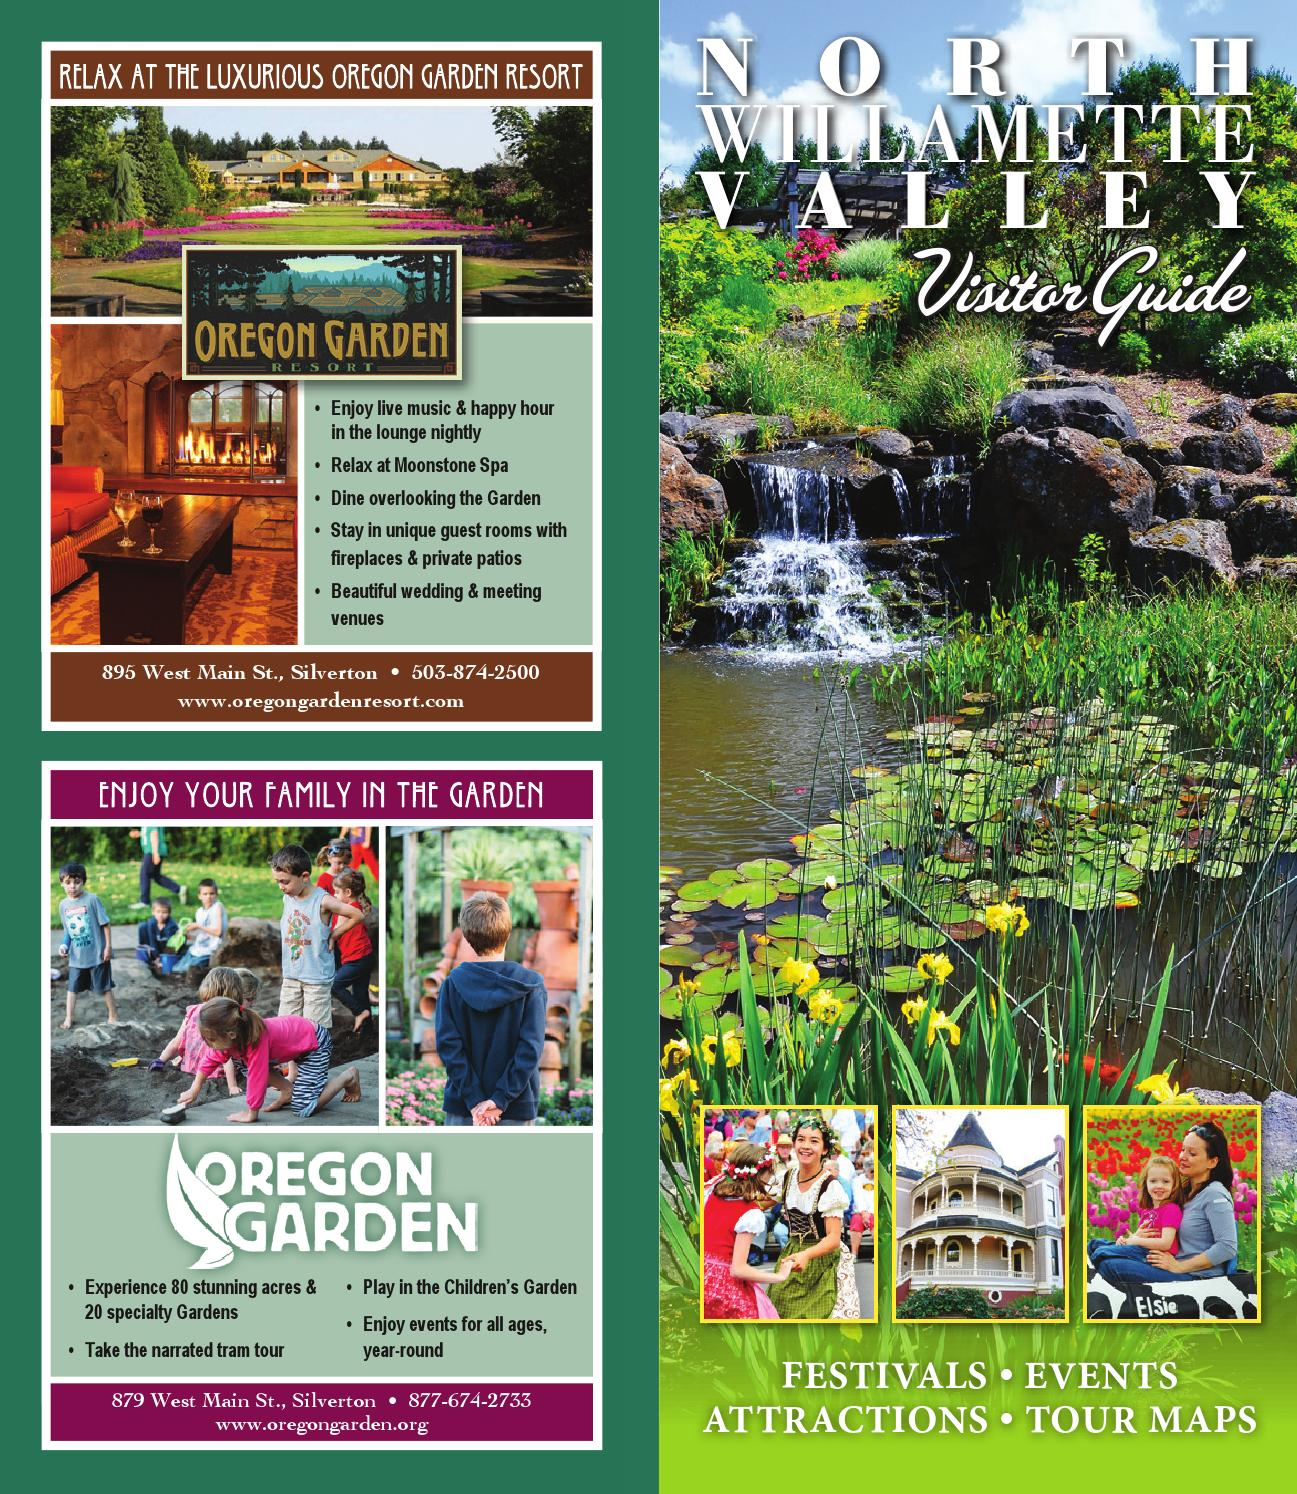 North Willamette Valley Visitor Guide 2015 By MAP